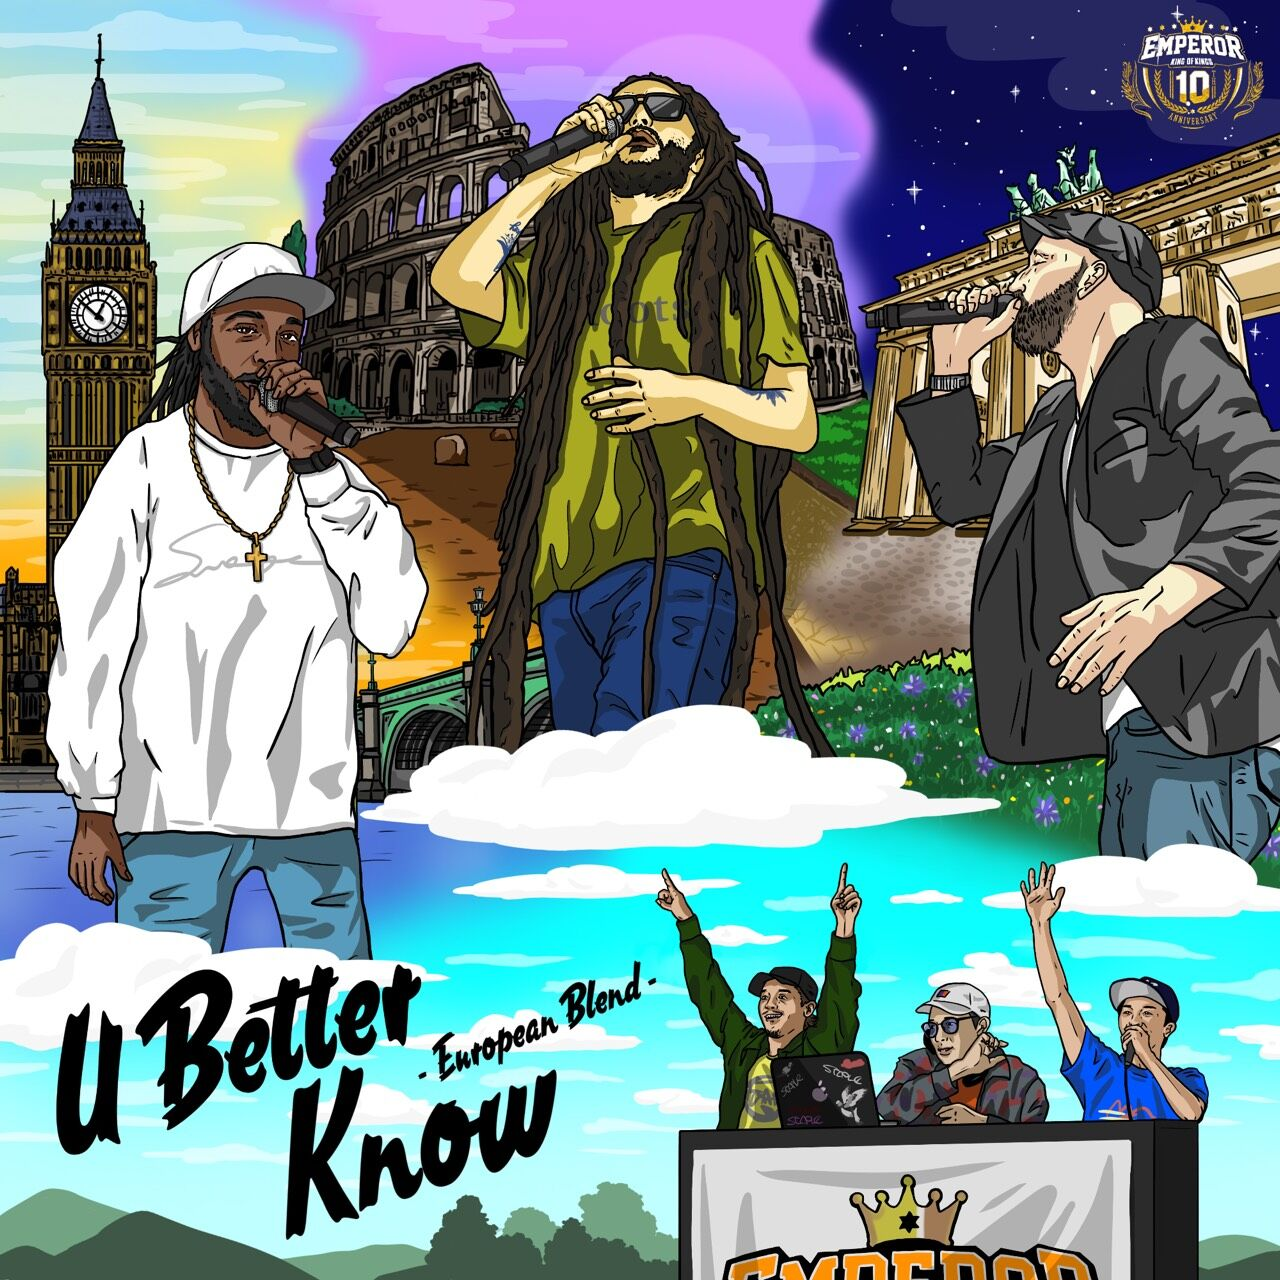 EMPEROR / U BETTER KNOW Mixed By Yo-chang